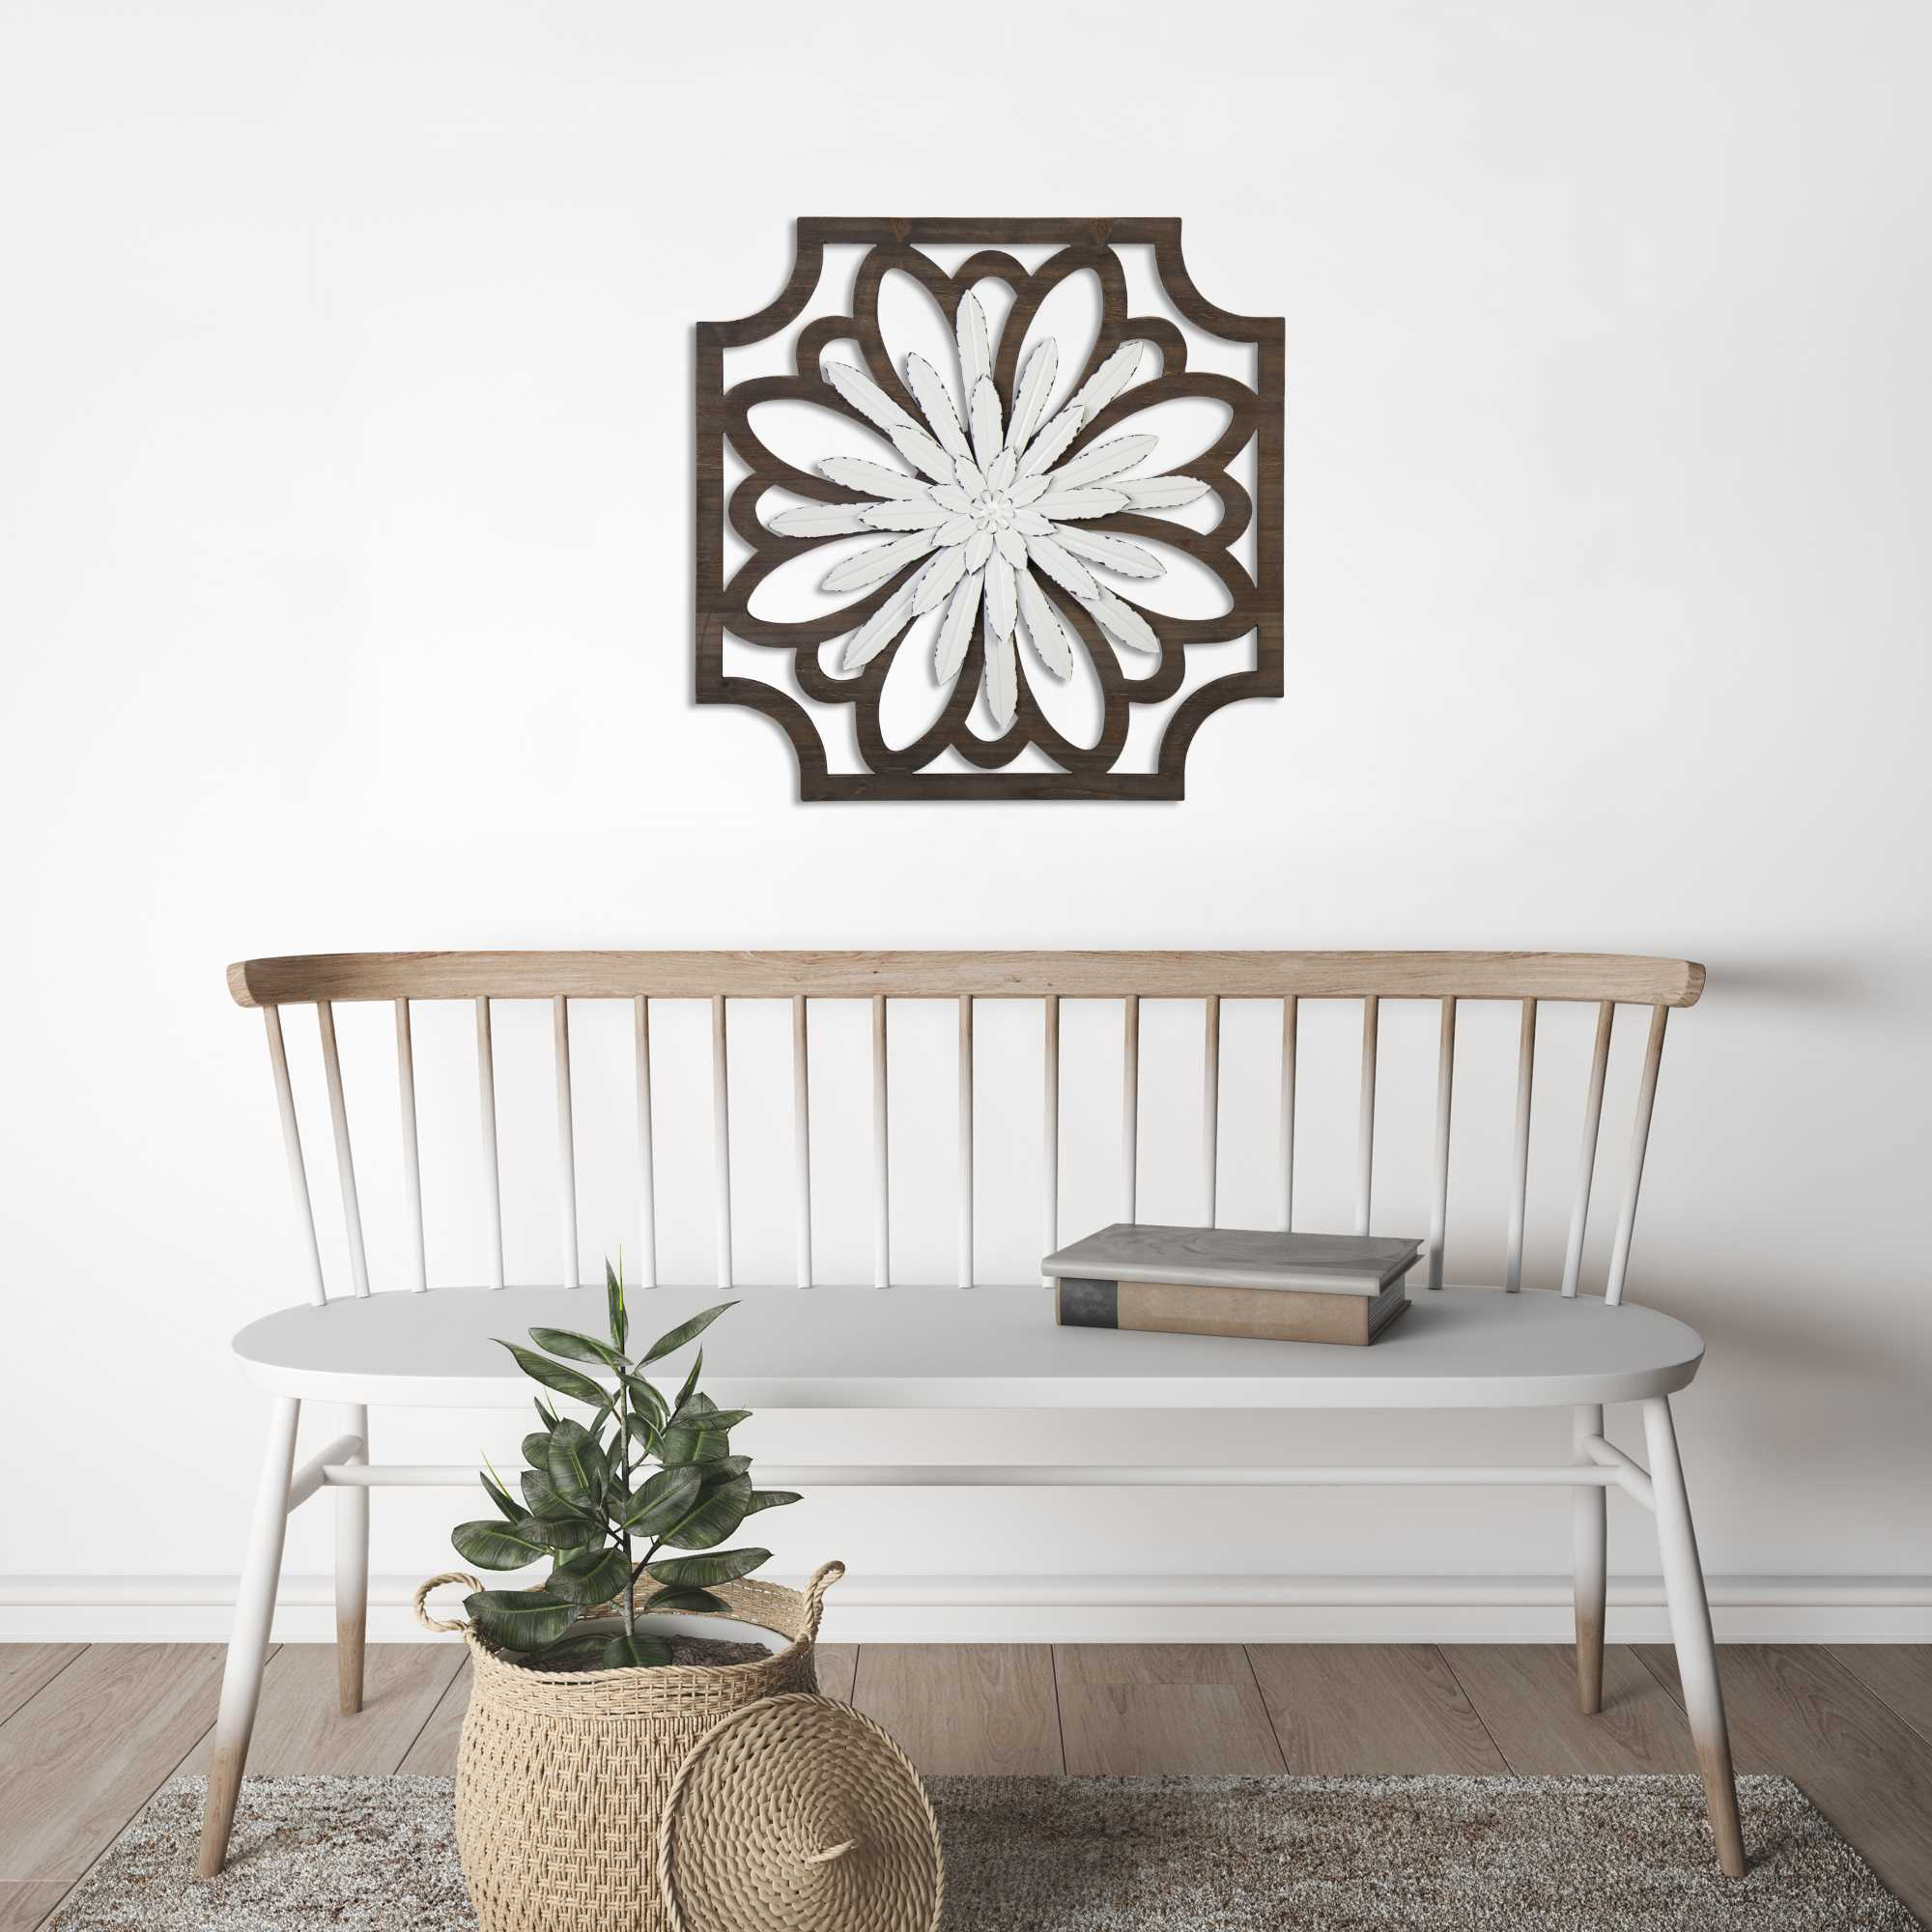 3D White Metal Flower and Walnut Framed Wall Art